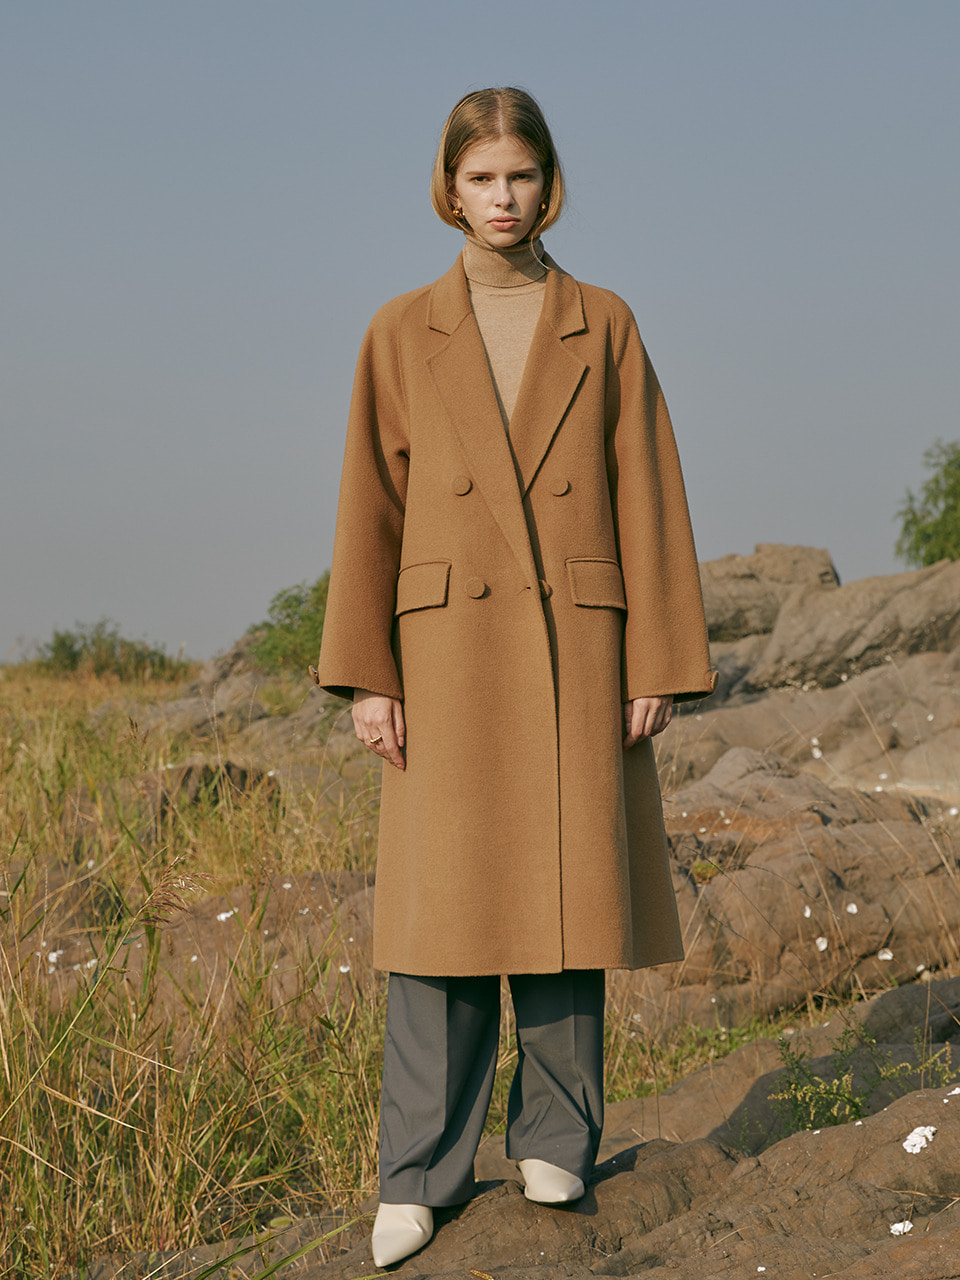 Premium handmade cashmere blend wool wrapped button coat in camel